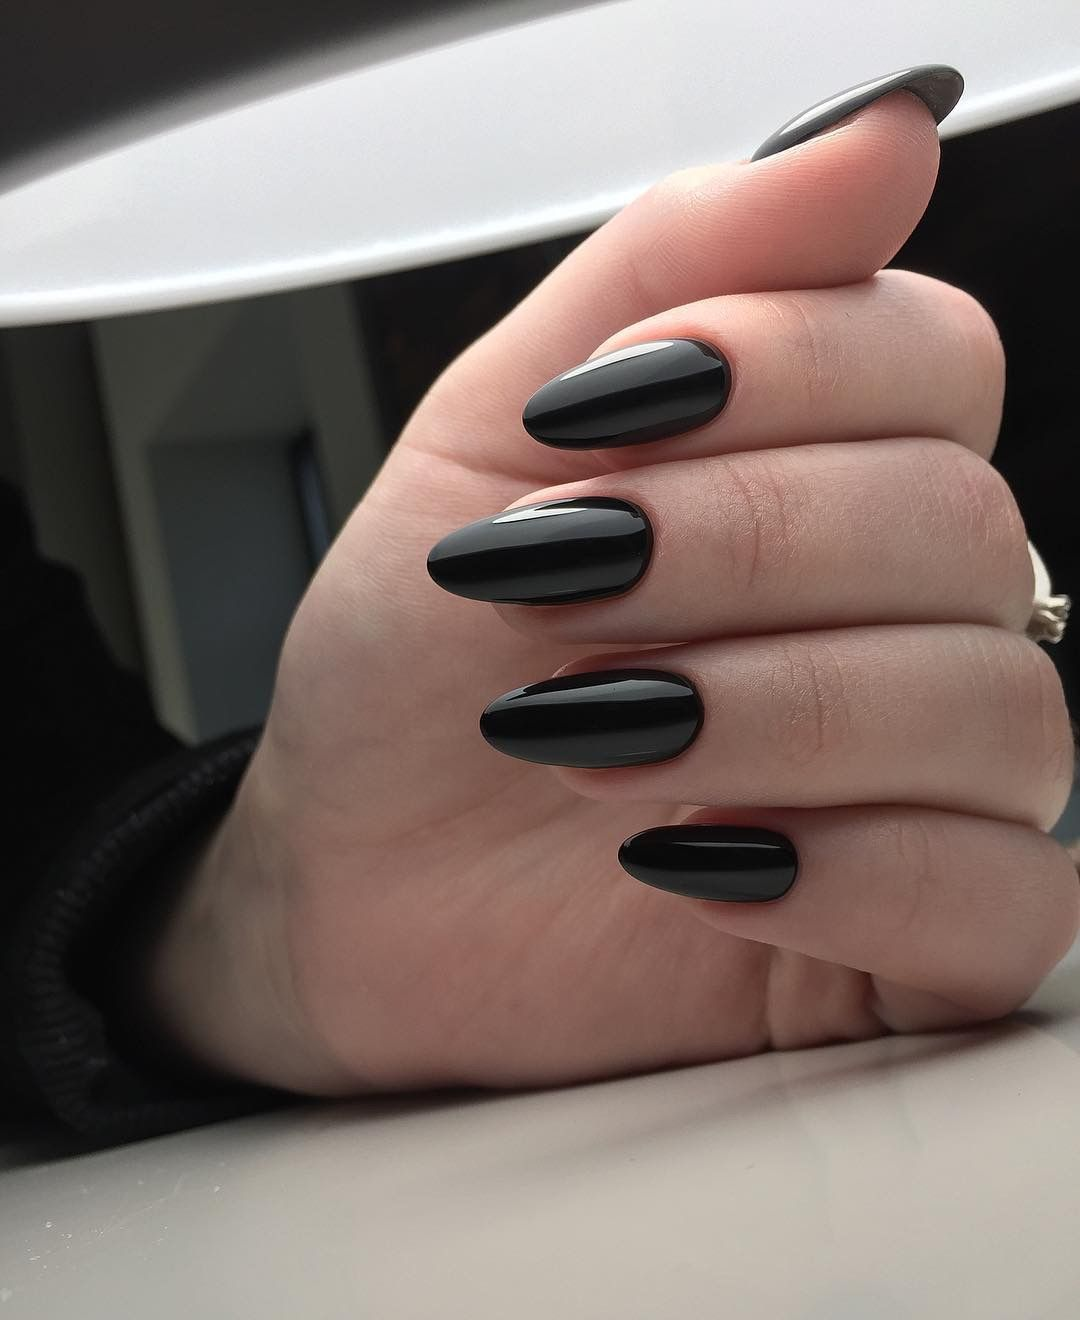 Pin by Julia on nails | Pinterest | Makeup, Manicure and Nail inspo